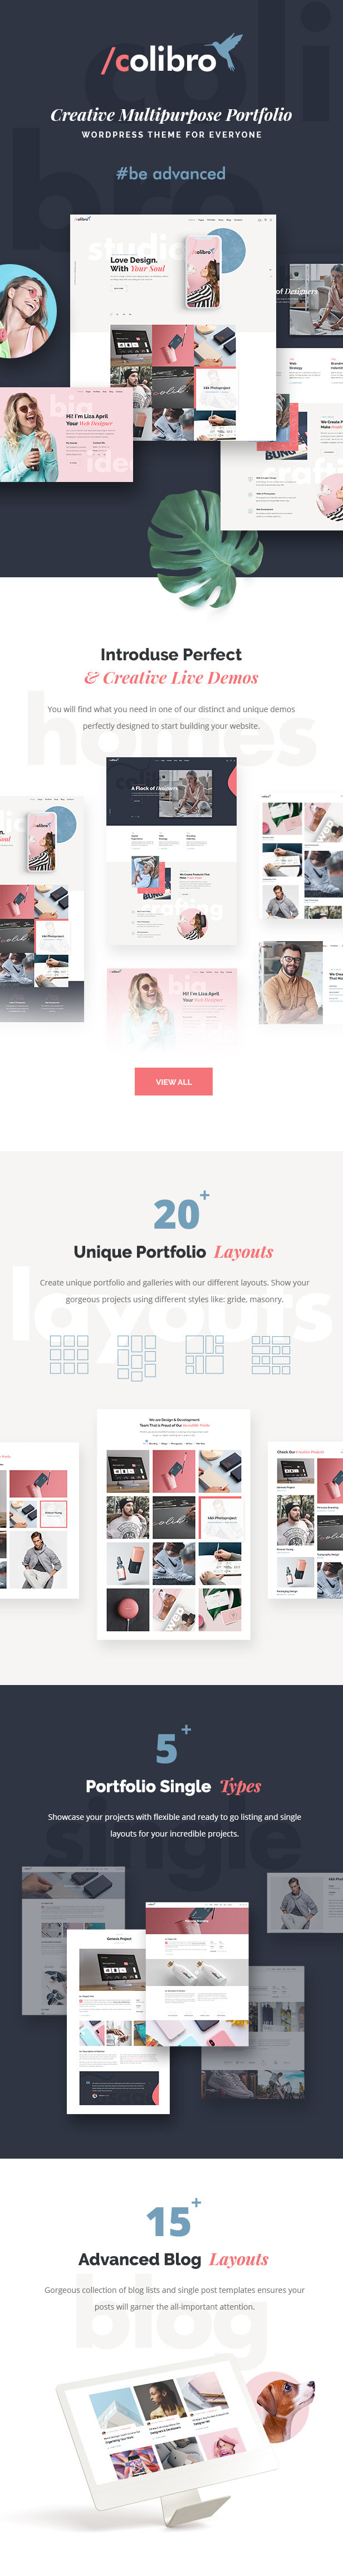 Colibro - Multipurpose Portfolio WordPress Theme - 2